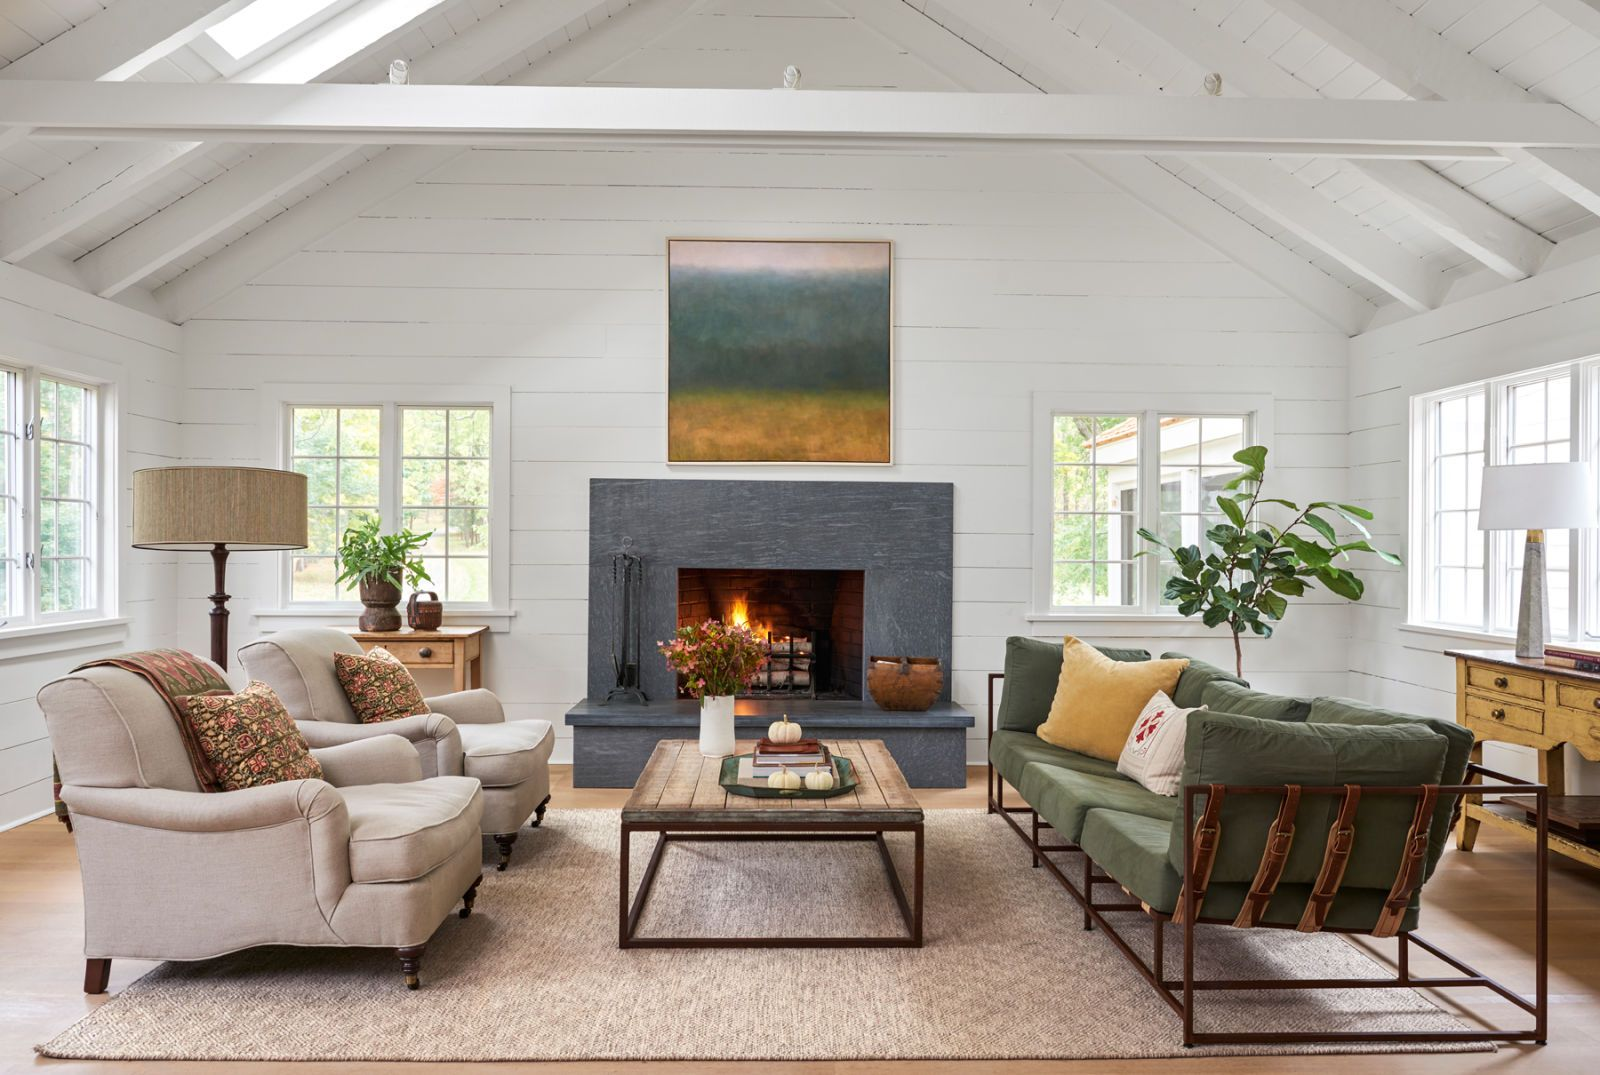 This Connecticut Farmhouse Is the Definition of Open and